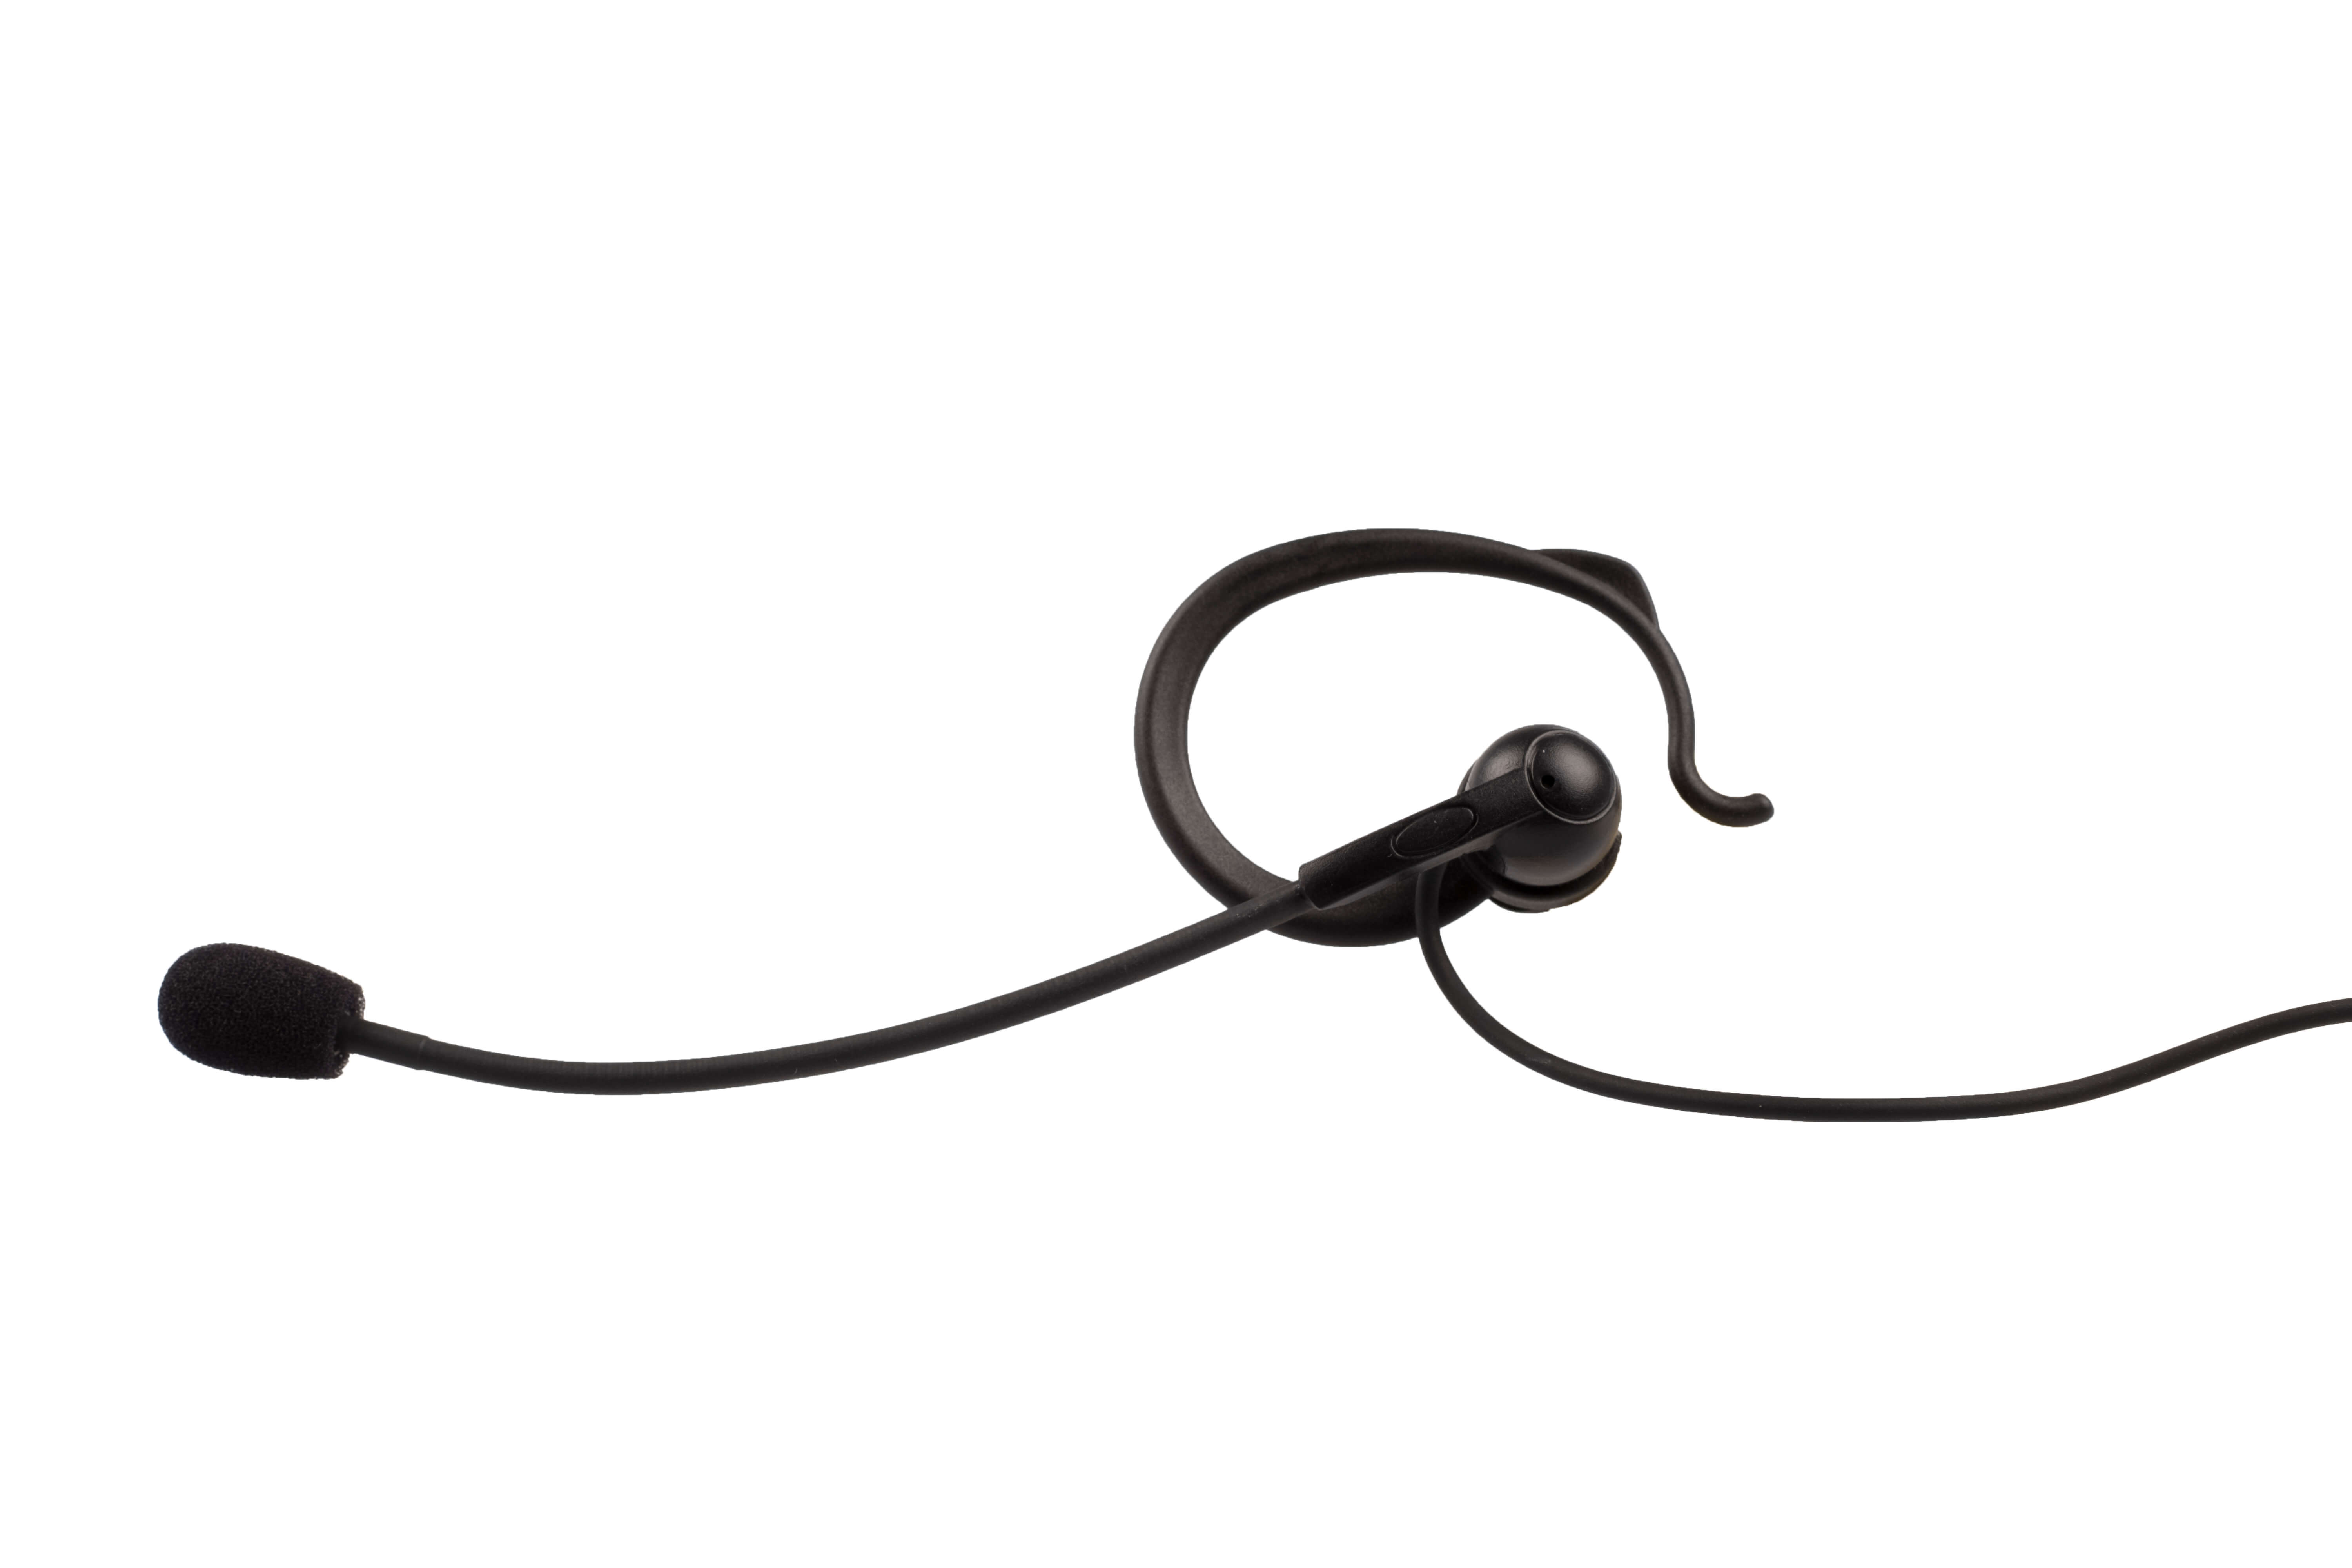 axitour-axiwi-he-002-headset-sport